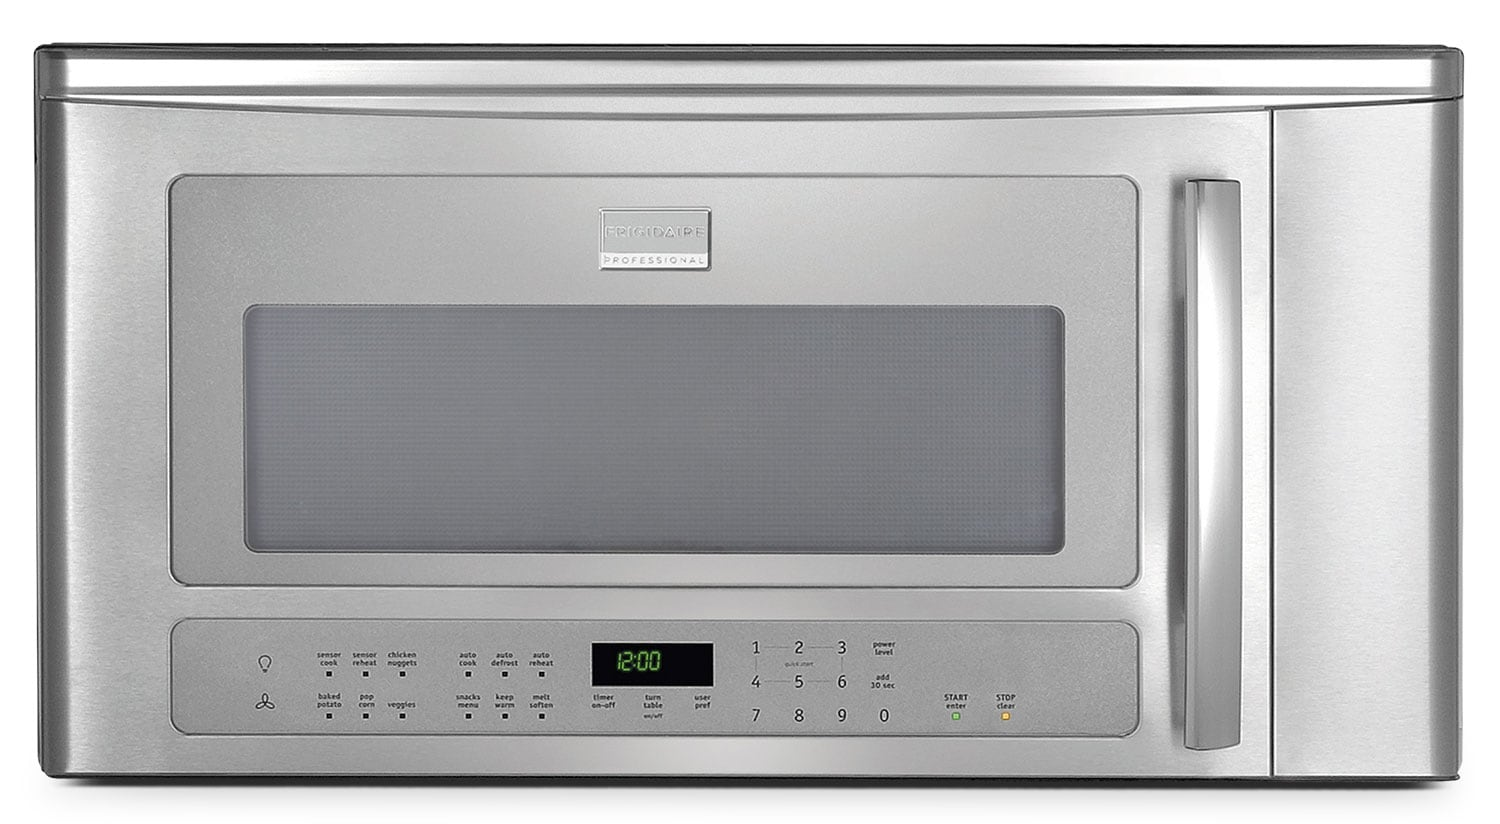 Cooking Products - Frigidaire Professional Over-the-Range Microwave CPBM189KF